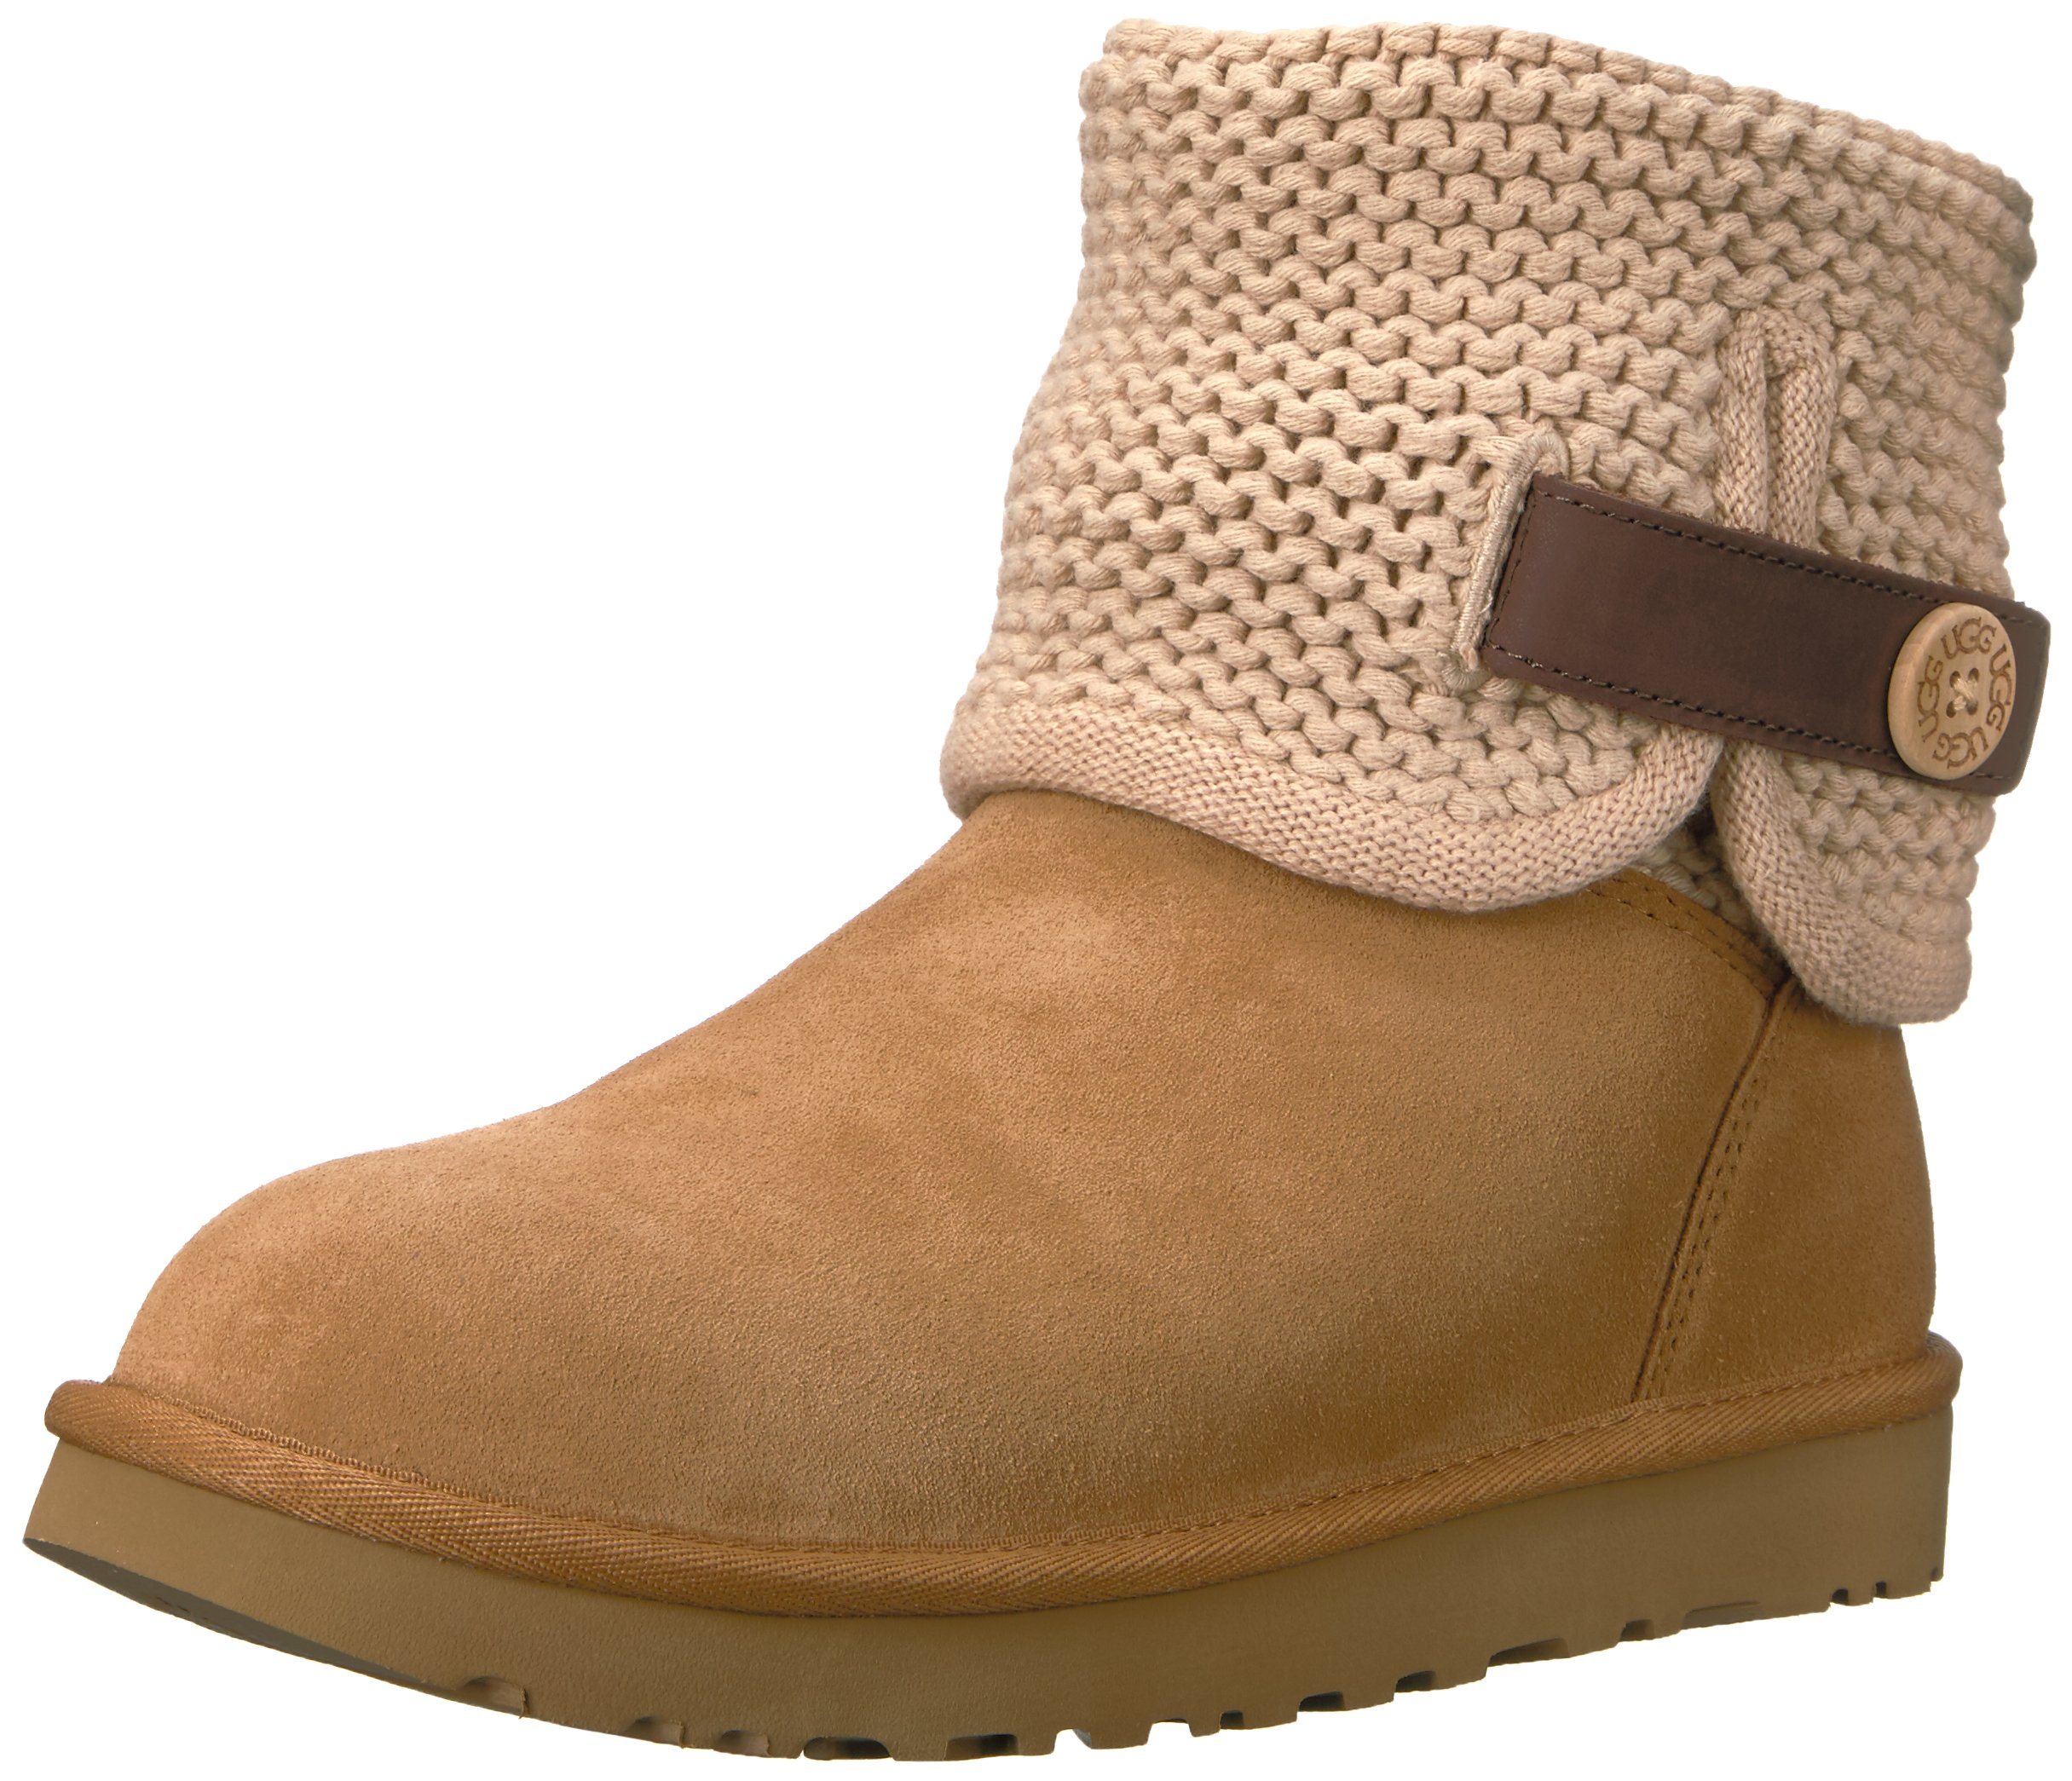 UGG Women's Shaina Slip On Slipper, Chestnut, 9 M US